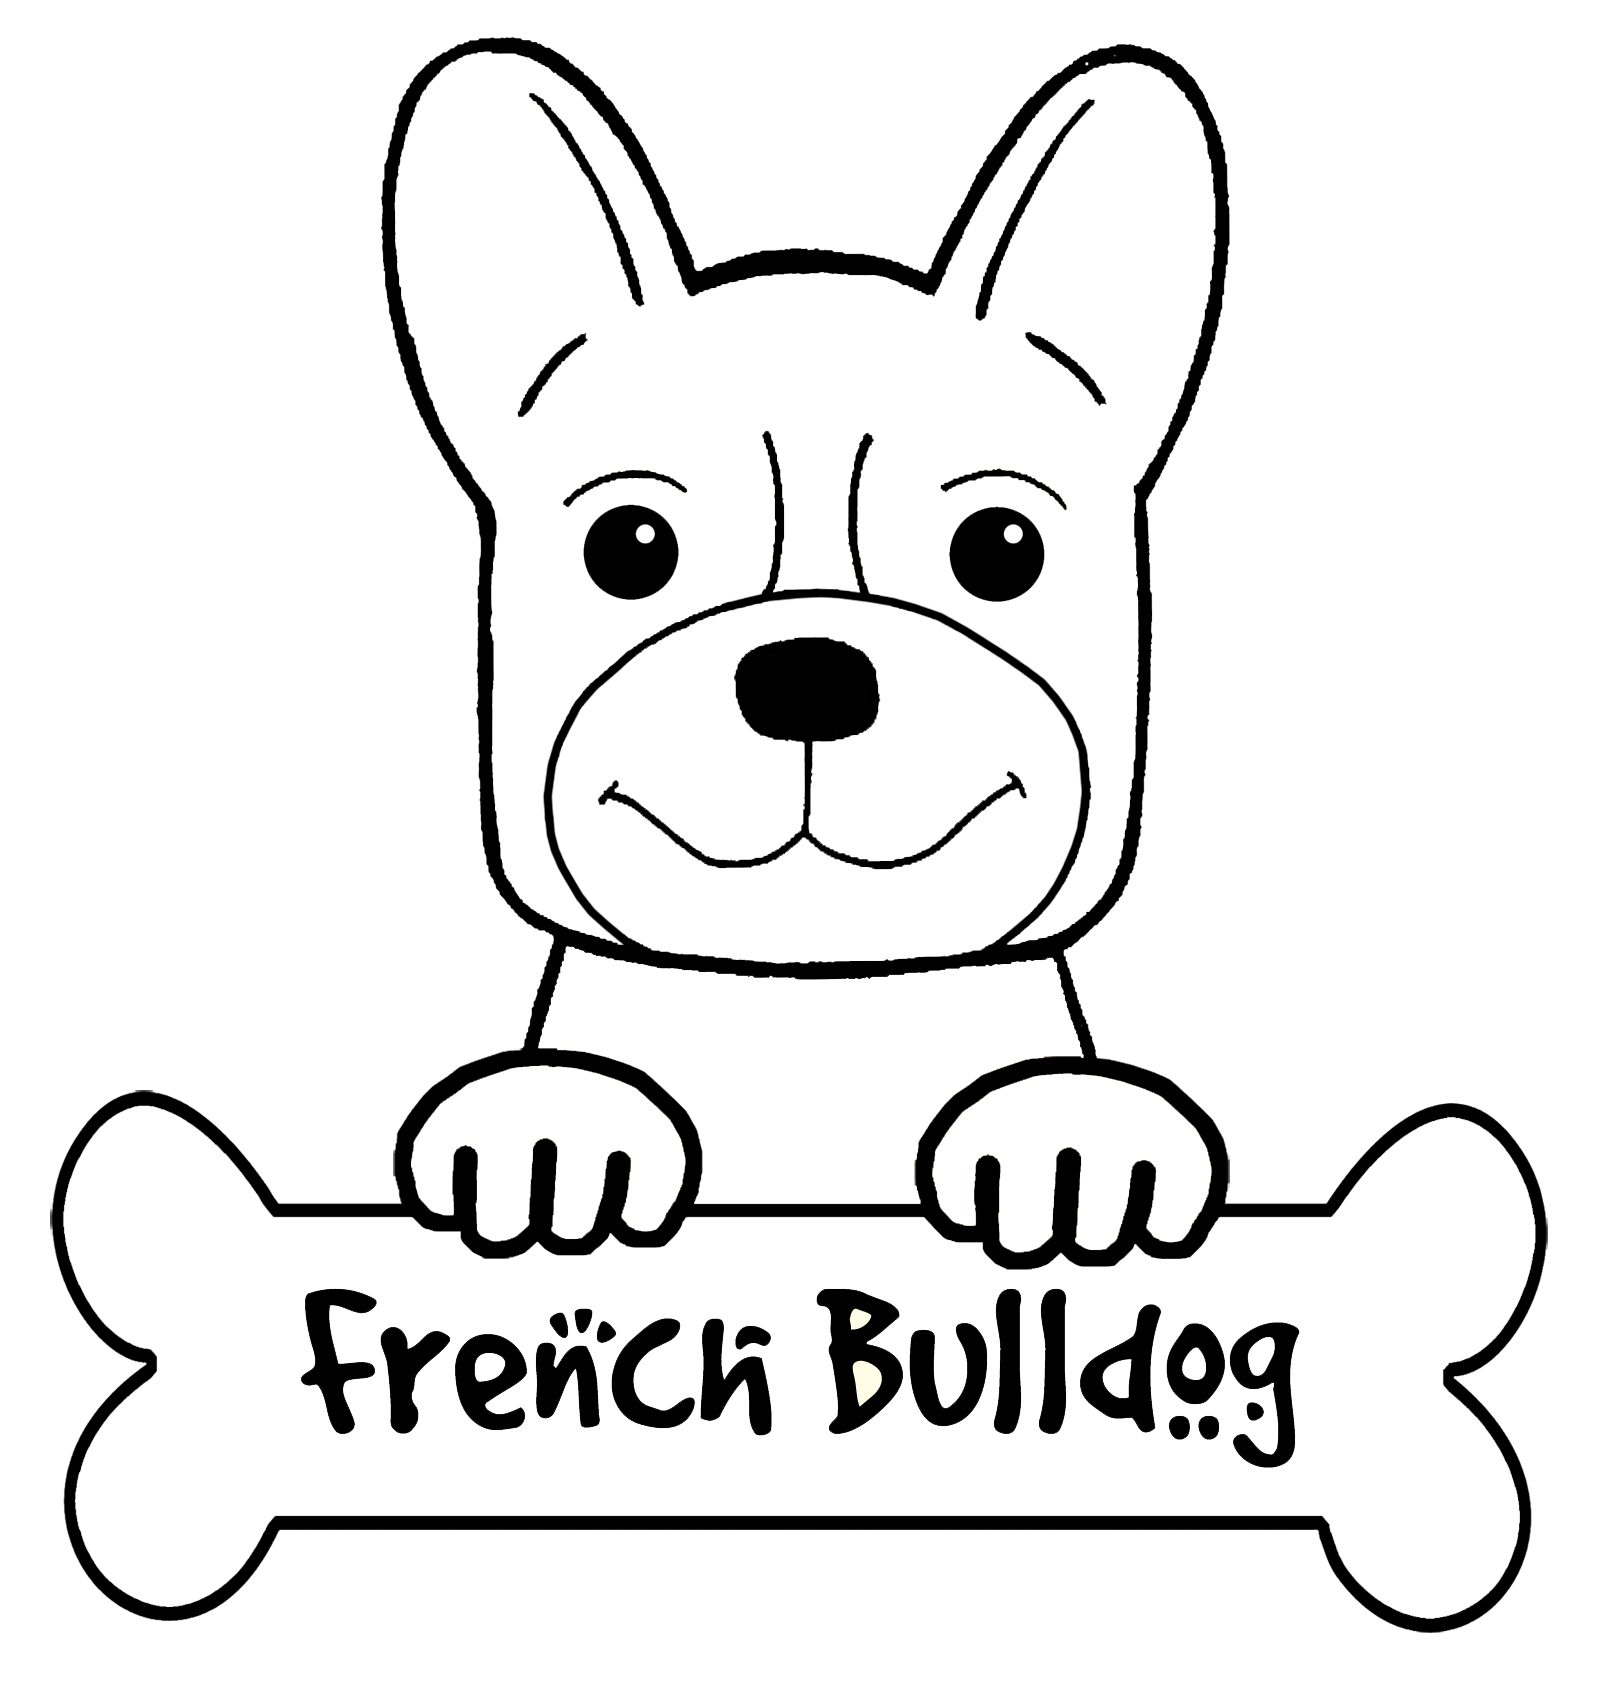 Baby Doll 333472002 in addition Plane Coloring Pages 11 04 2017 in addition Seite 2 in addition Hamster Coloring Pages further Ants Marching Coloring Pages. on bulldog coloring pages for adults